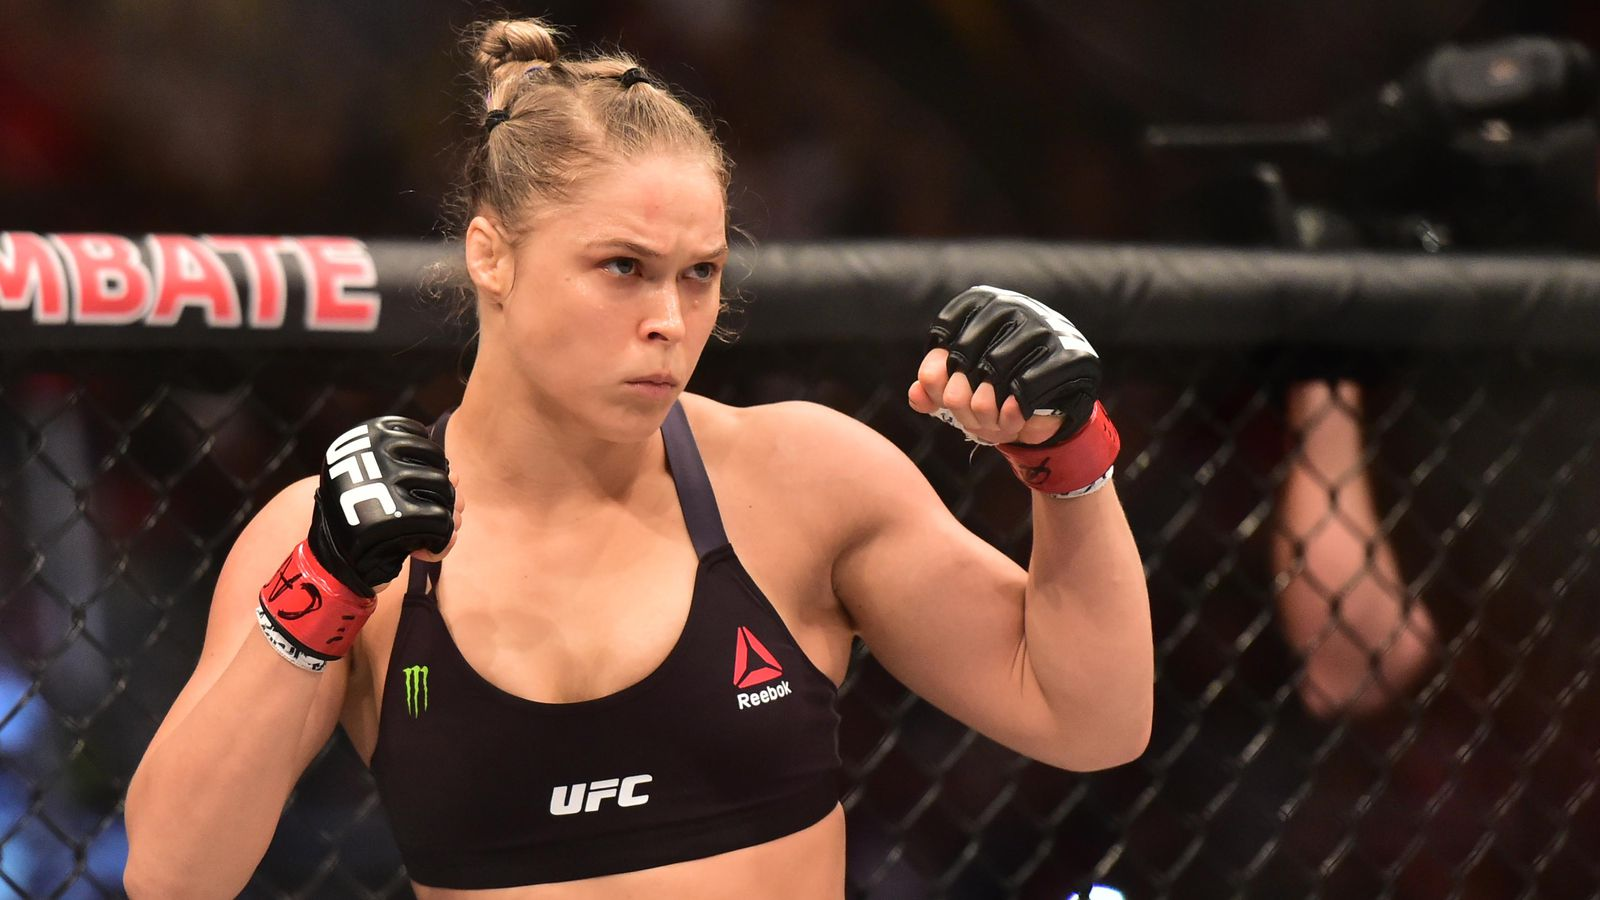 Nutritionist Mike Dolce hints at a potential Ronda Rousey vs. Joanna Jedrzejczyk superfight